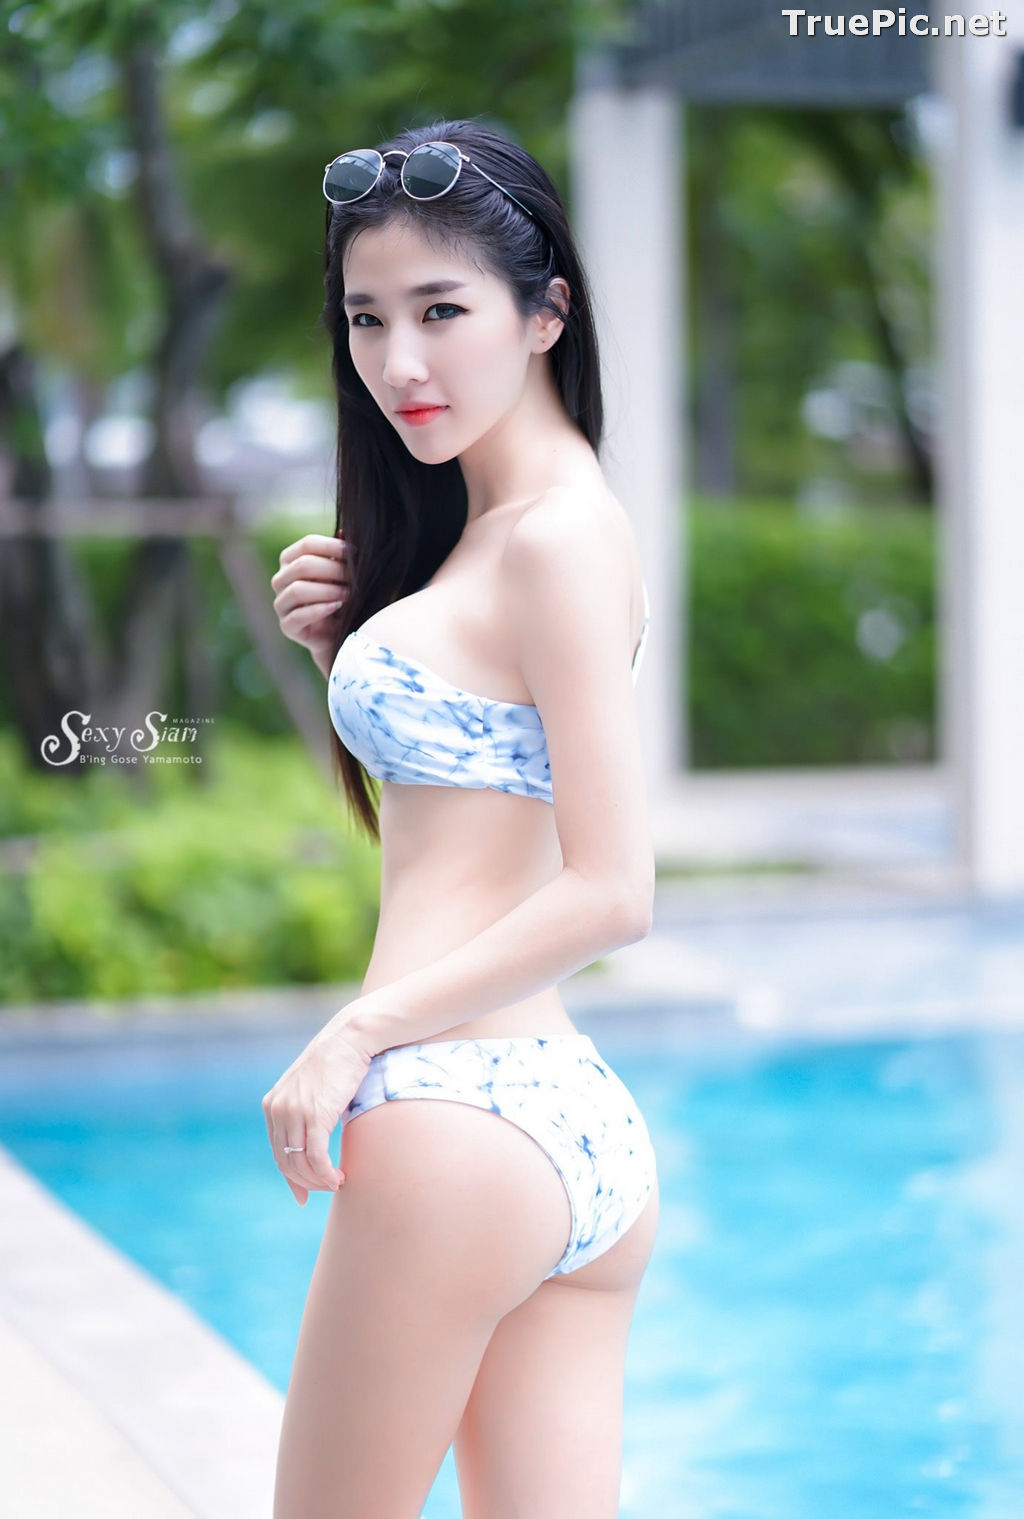 Image Thailand Model - Ohly Atita - Summer Bikini Collection - TruePic.net - Picture-9